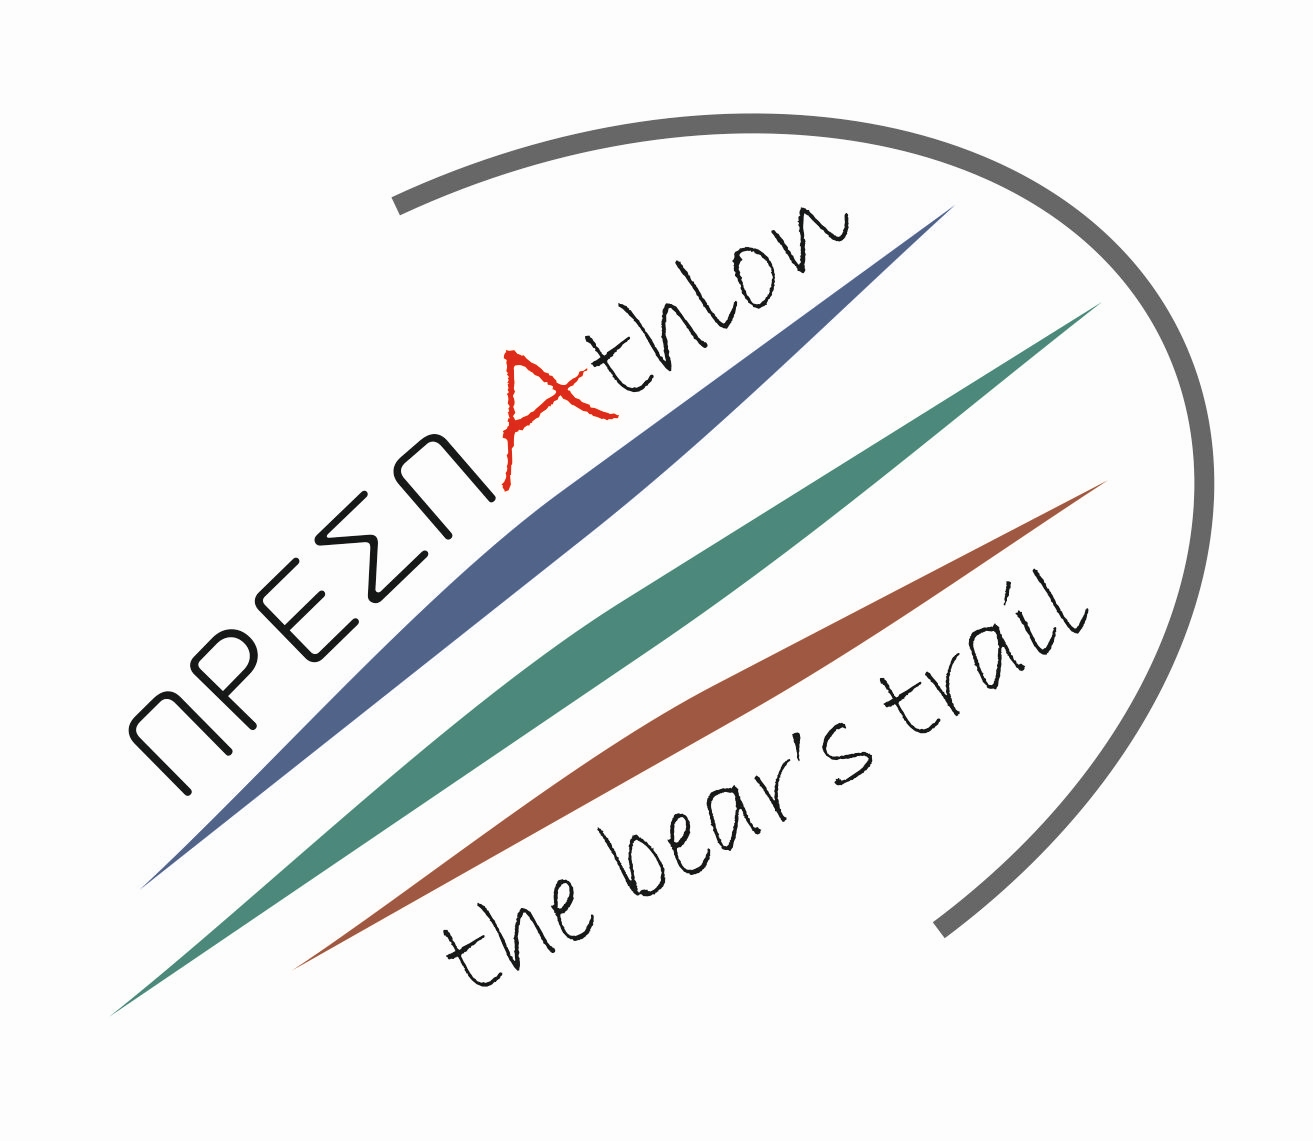 «ΠΡΕΣΠΑthlon 2019 – The Bear's Trail»